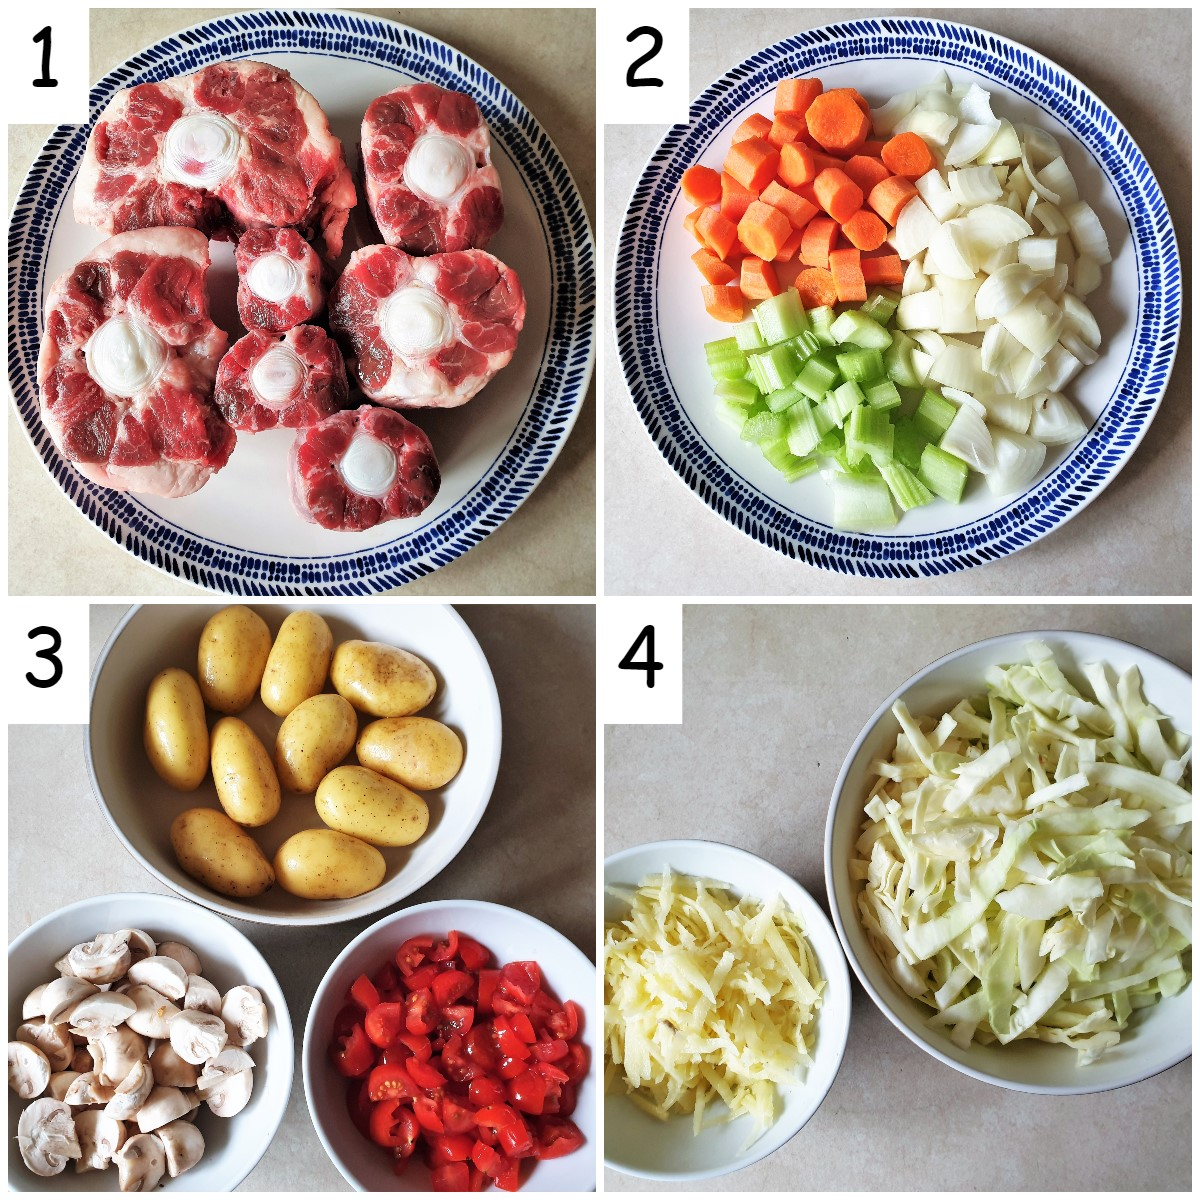 Ingredients for slow cooker oxtail stew.